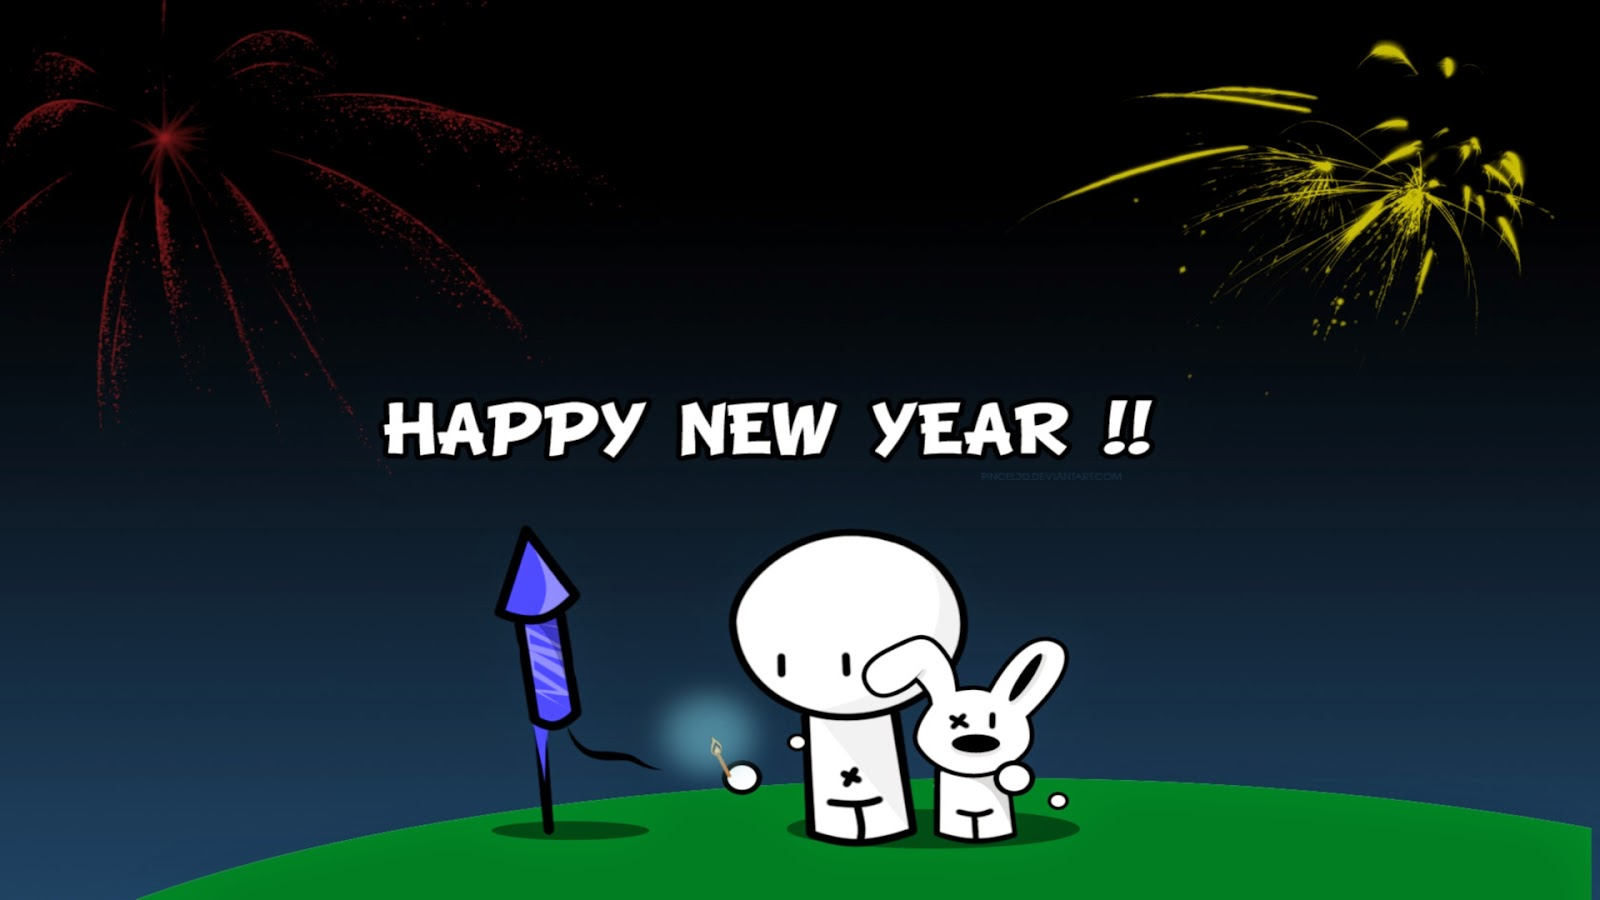 happy new year 2015 funny cartoon images wallpaper happy new year